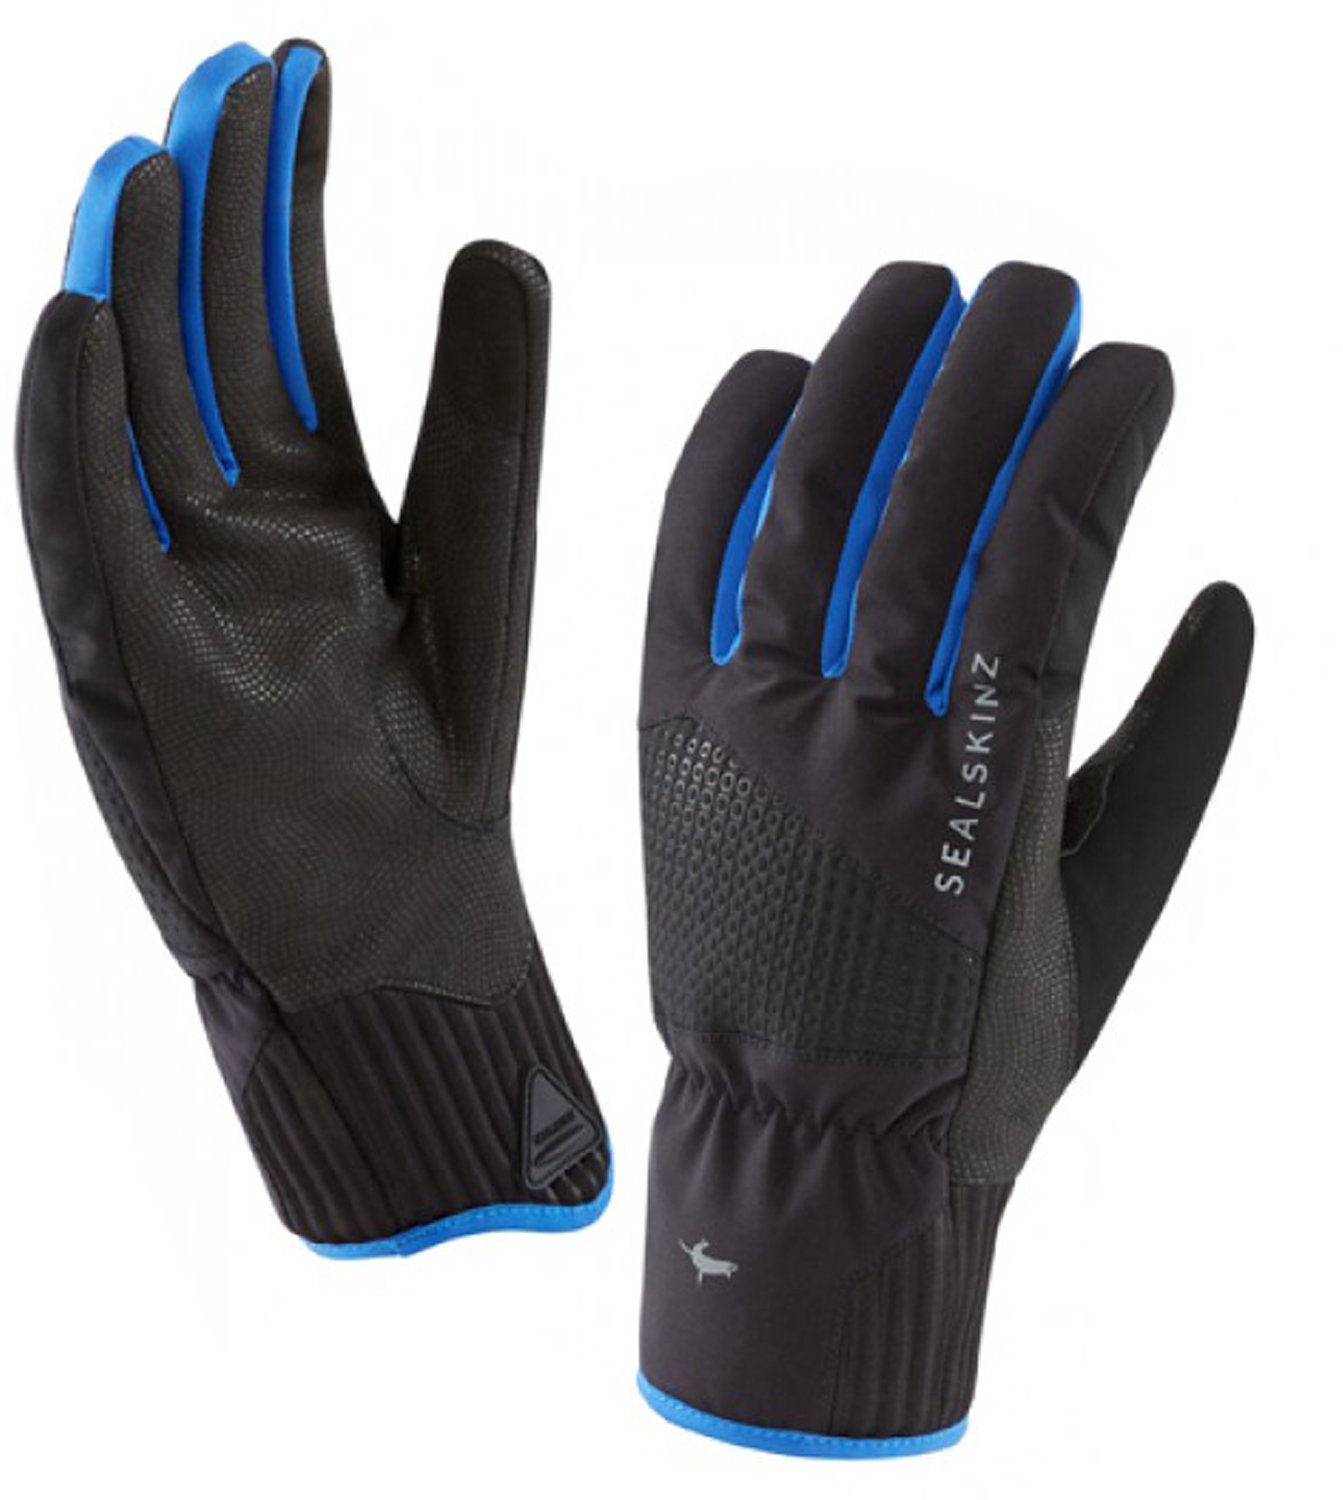 SealSkinz–Helvellyn XP impermeable guantes–negro/azul